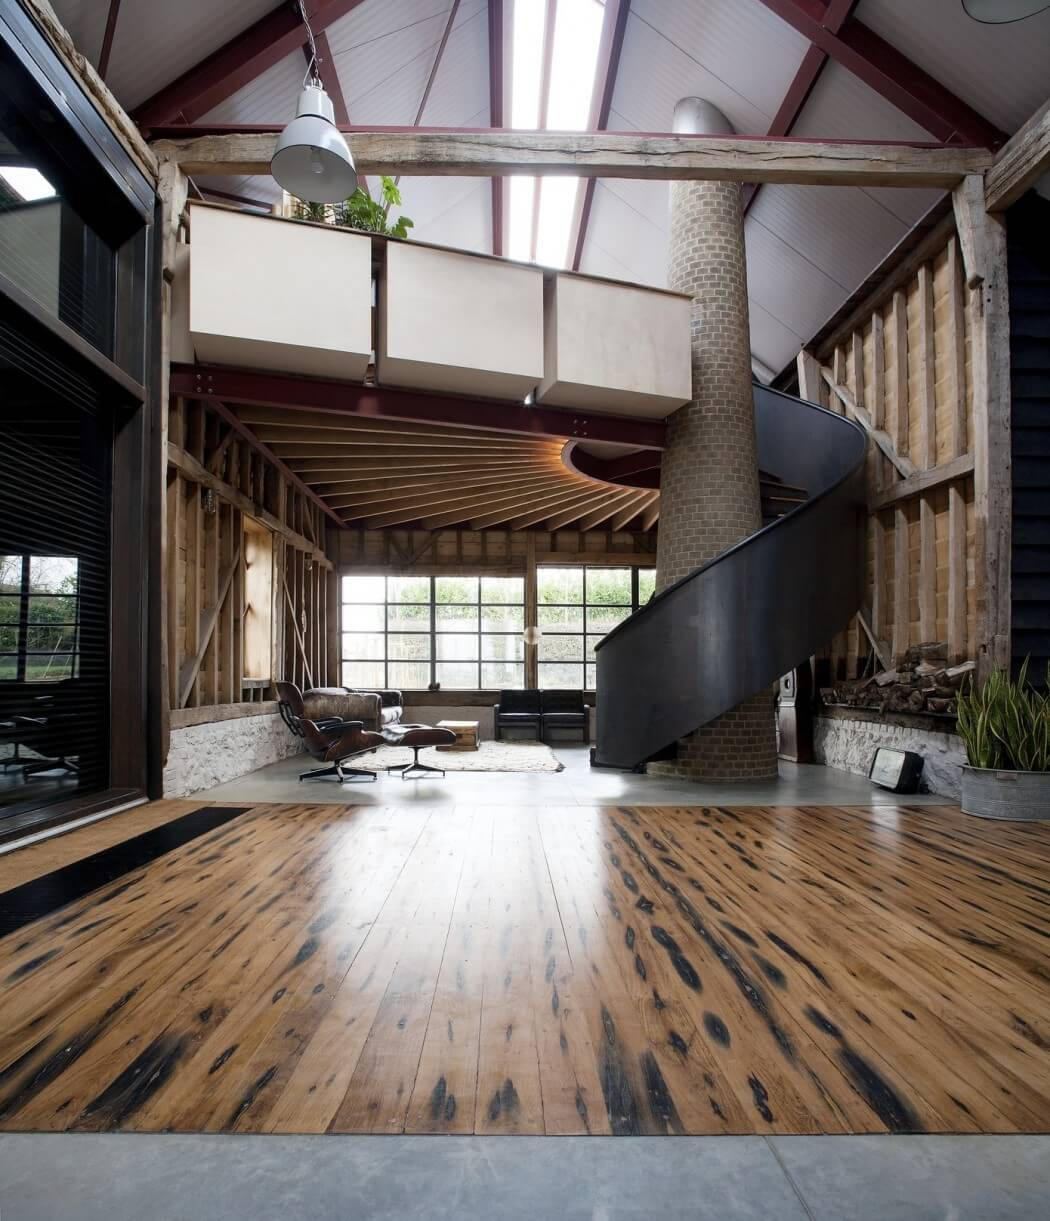 Ancient Party Barn by Liddicoat & Goldhill - 1